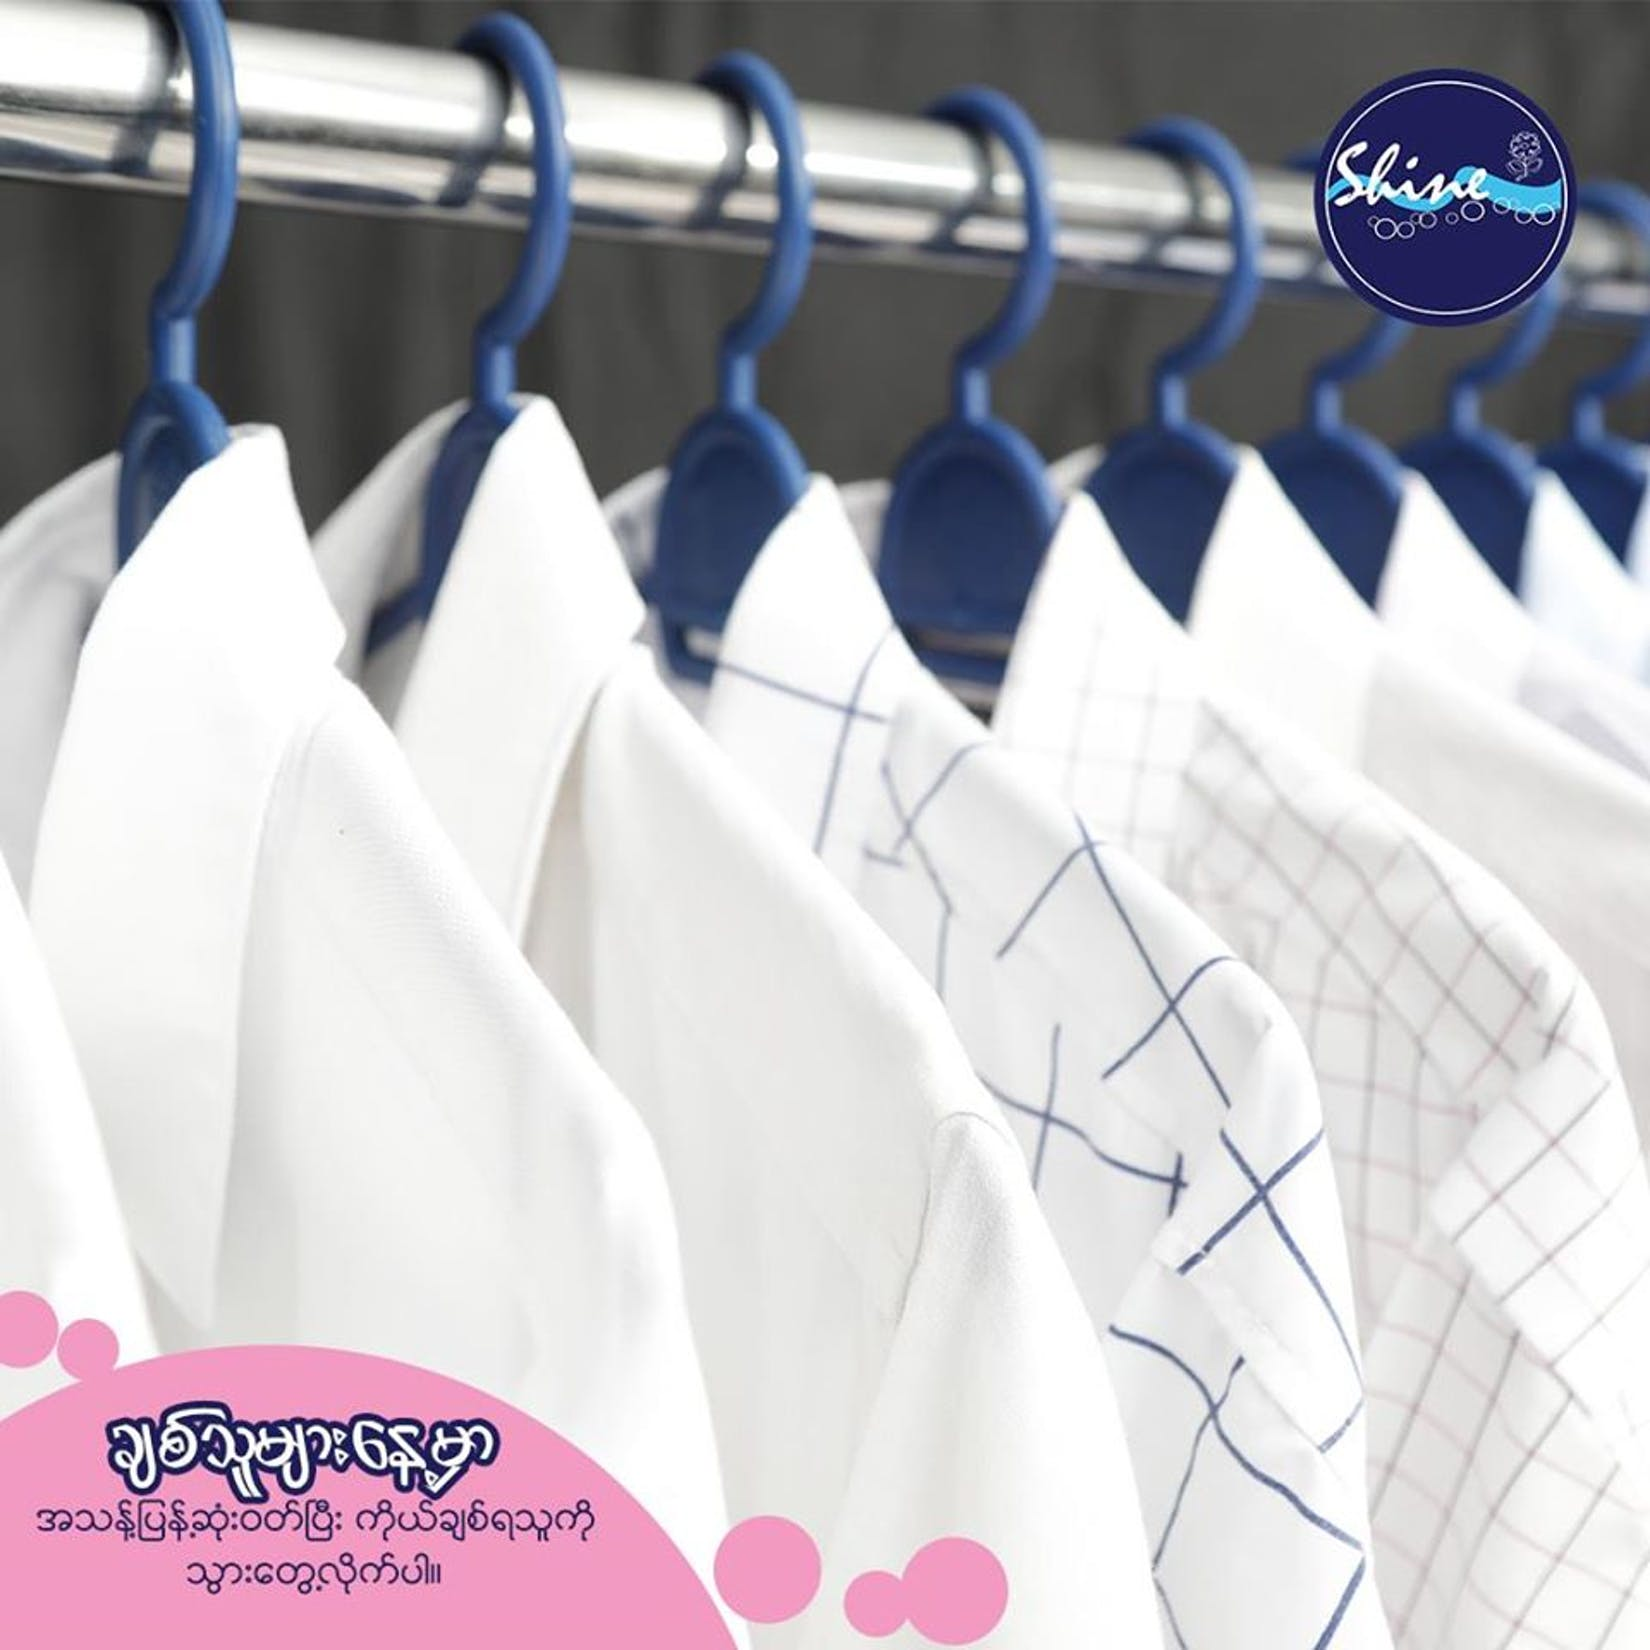 Shine Professional Dry Clean & Laundry | Beauty